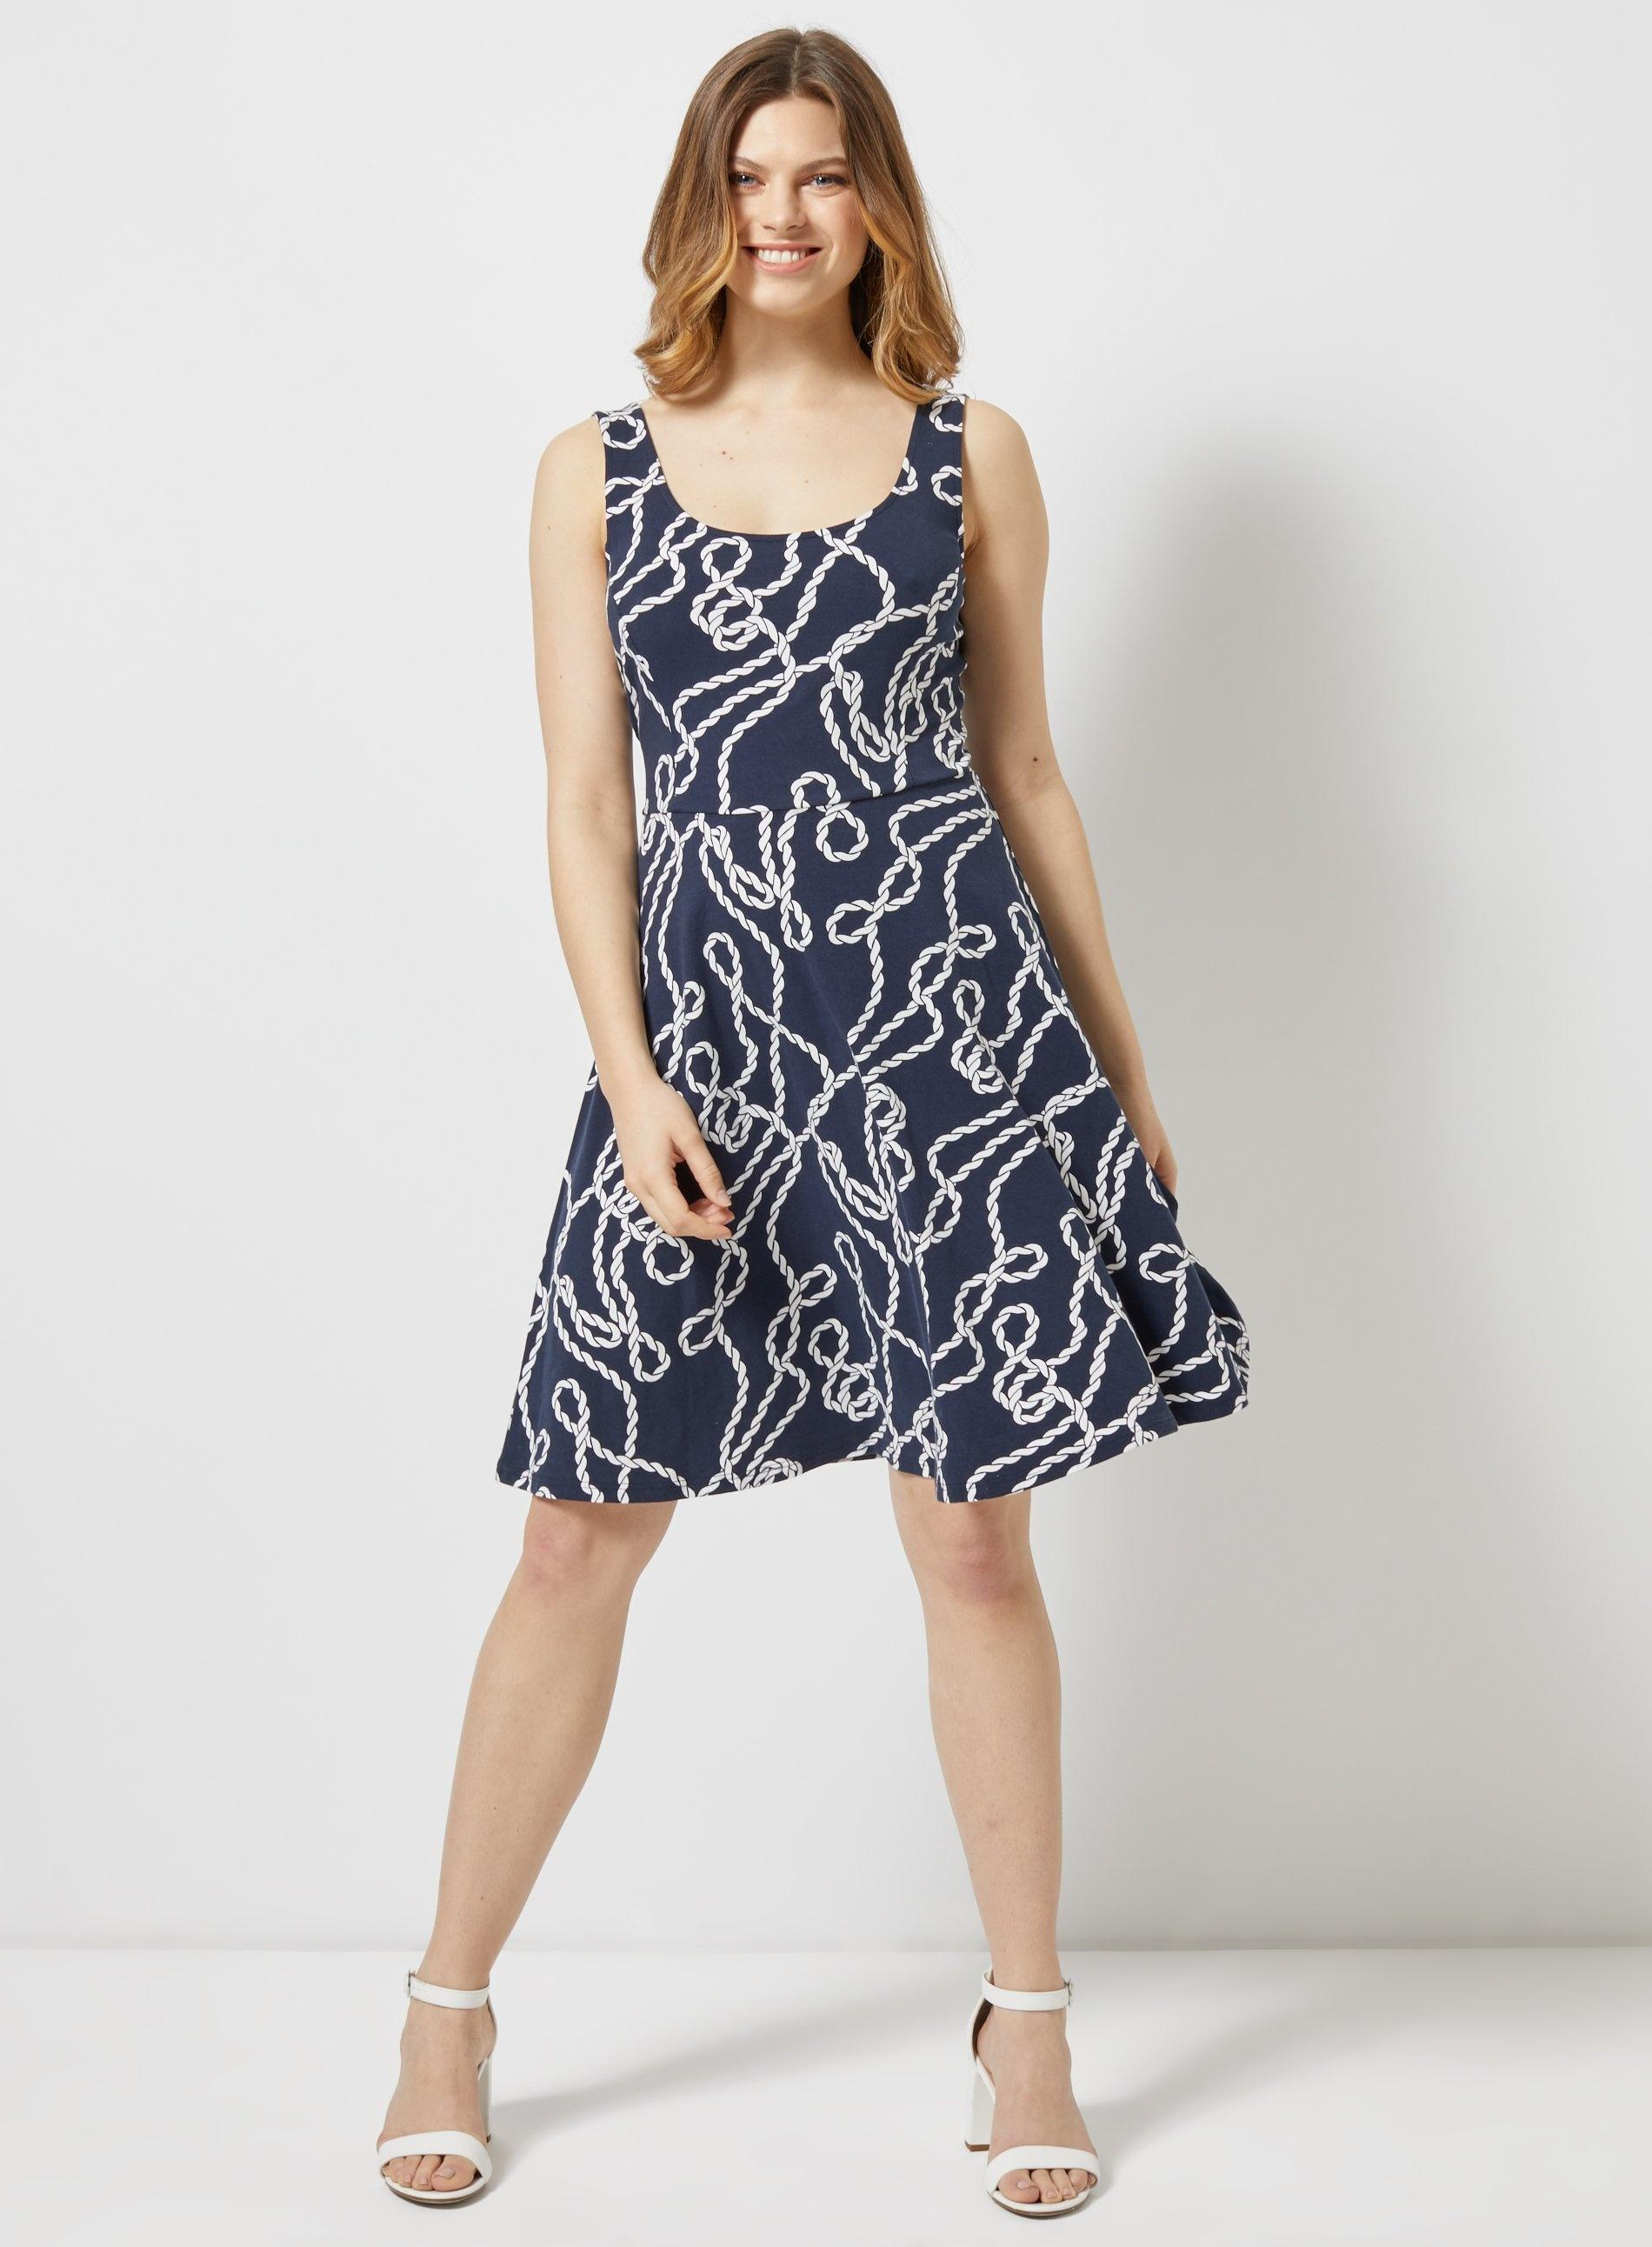 0ed9a71d02e Dorothy Perkins - Blue Navy And White Rope Seamed Fit And Flare Dress -  Lyst. View fullscreen